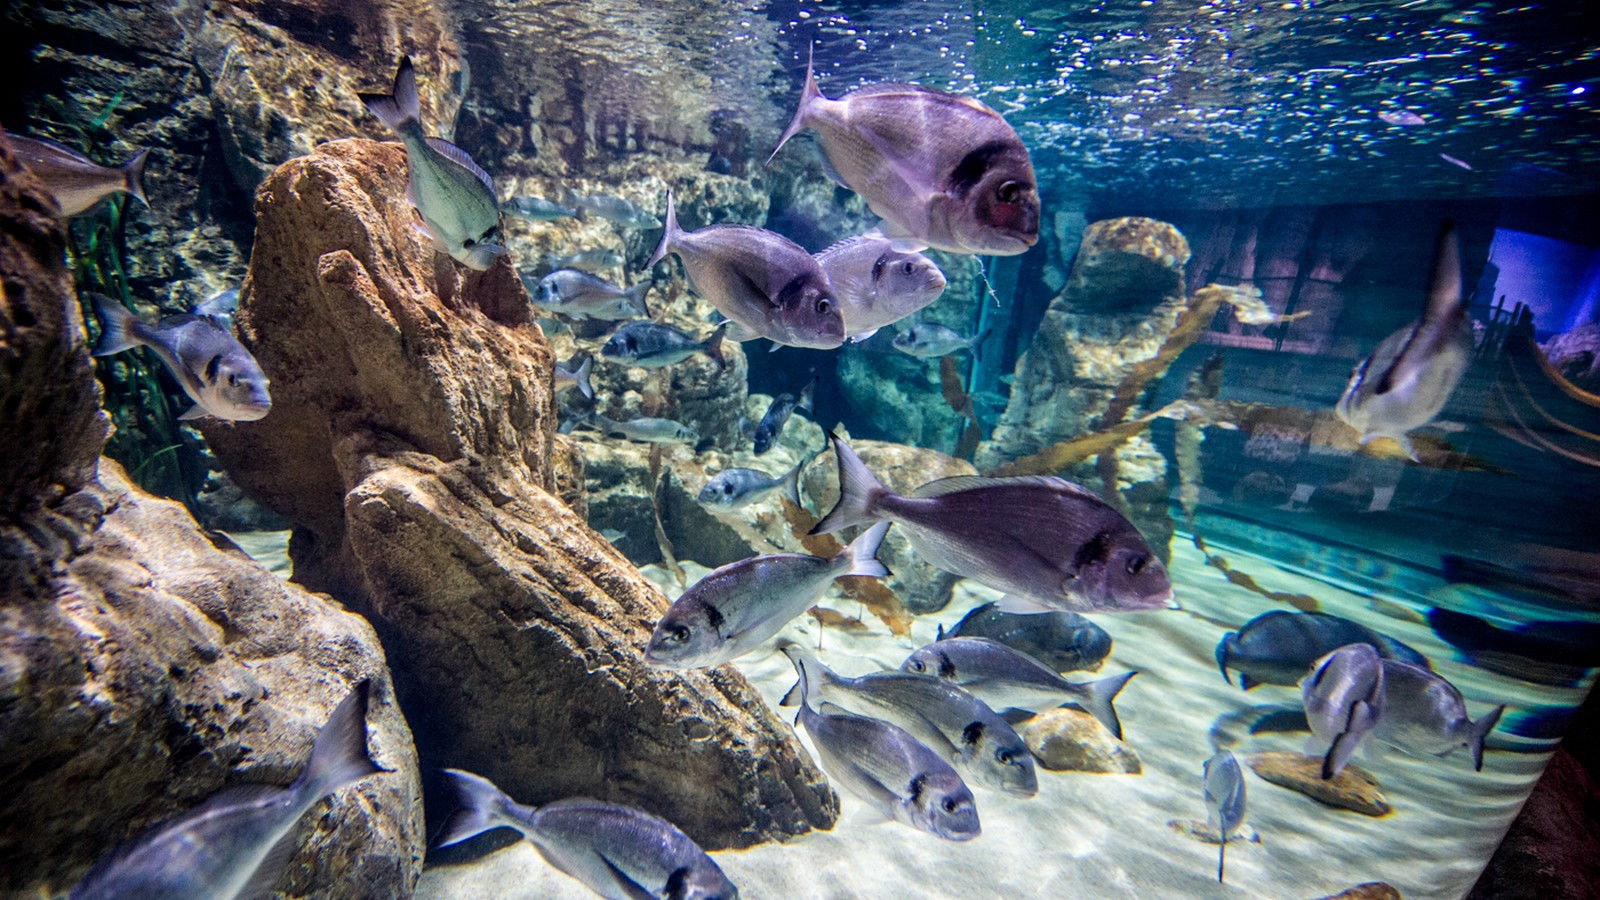 Aquarium in Malta